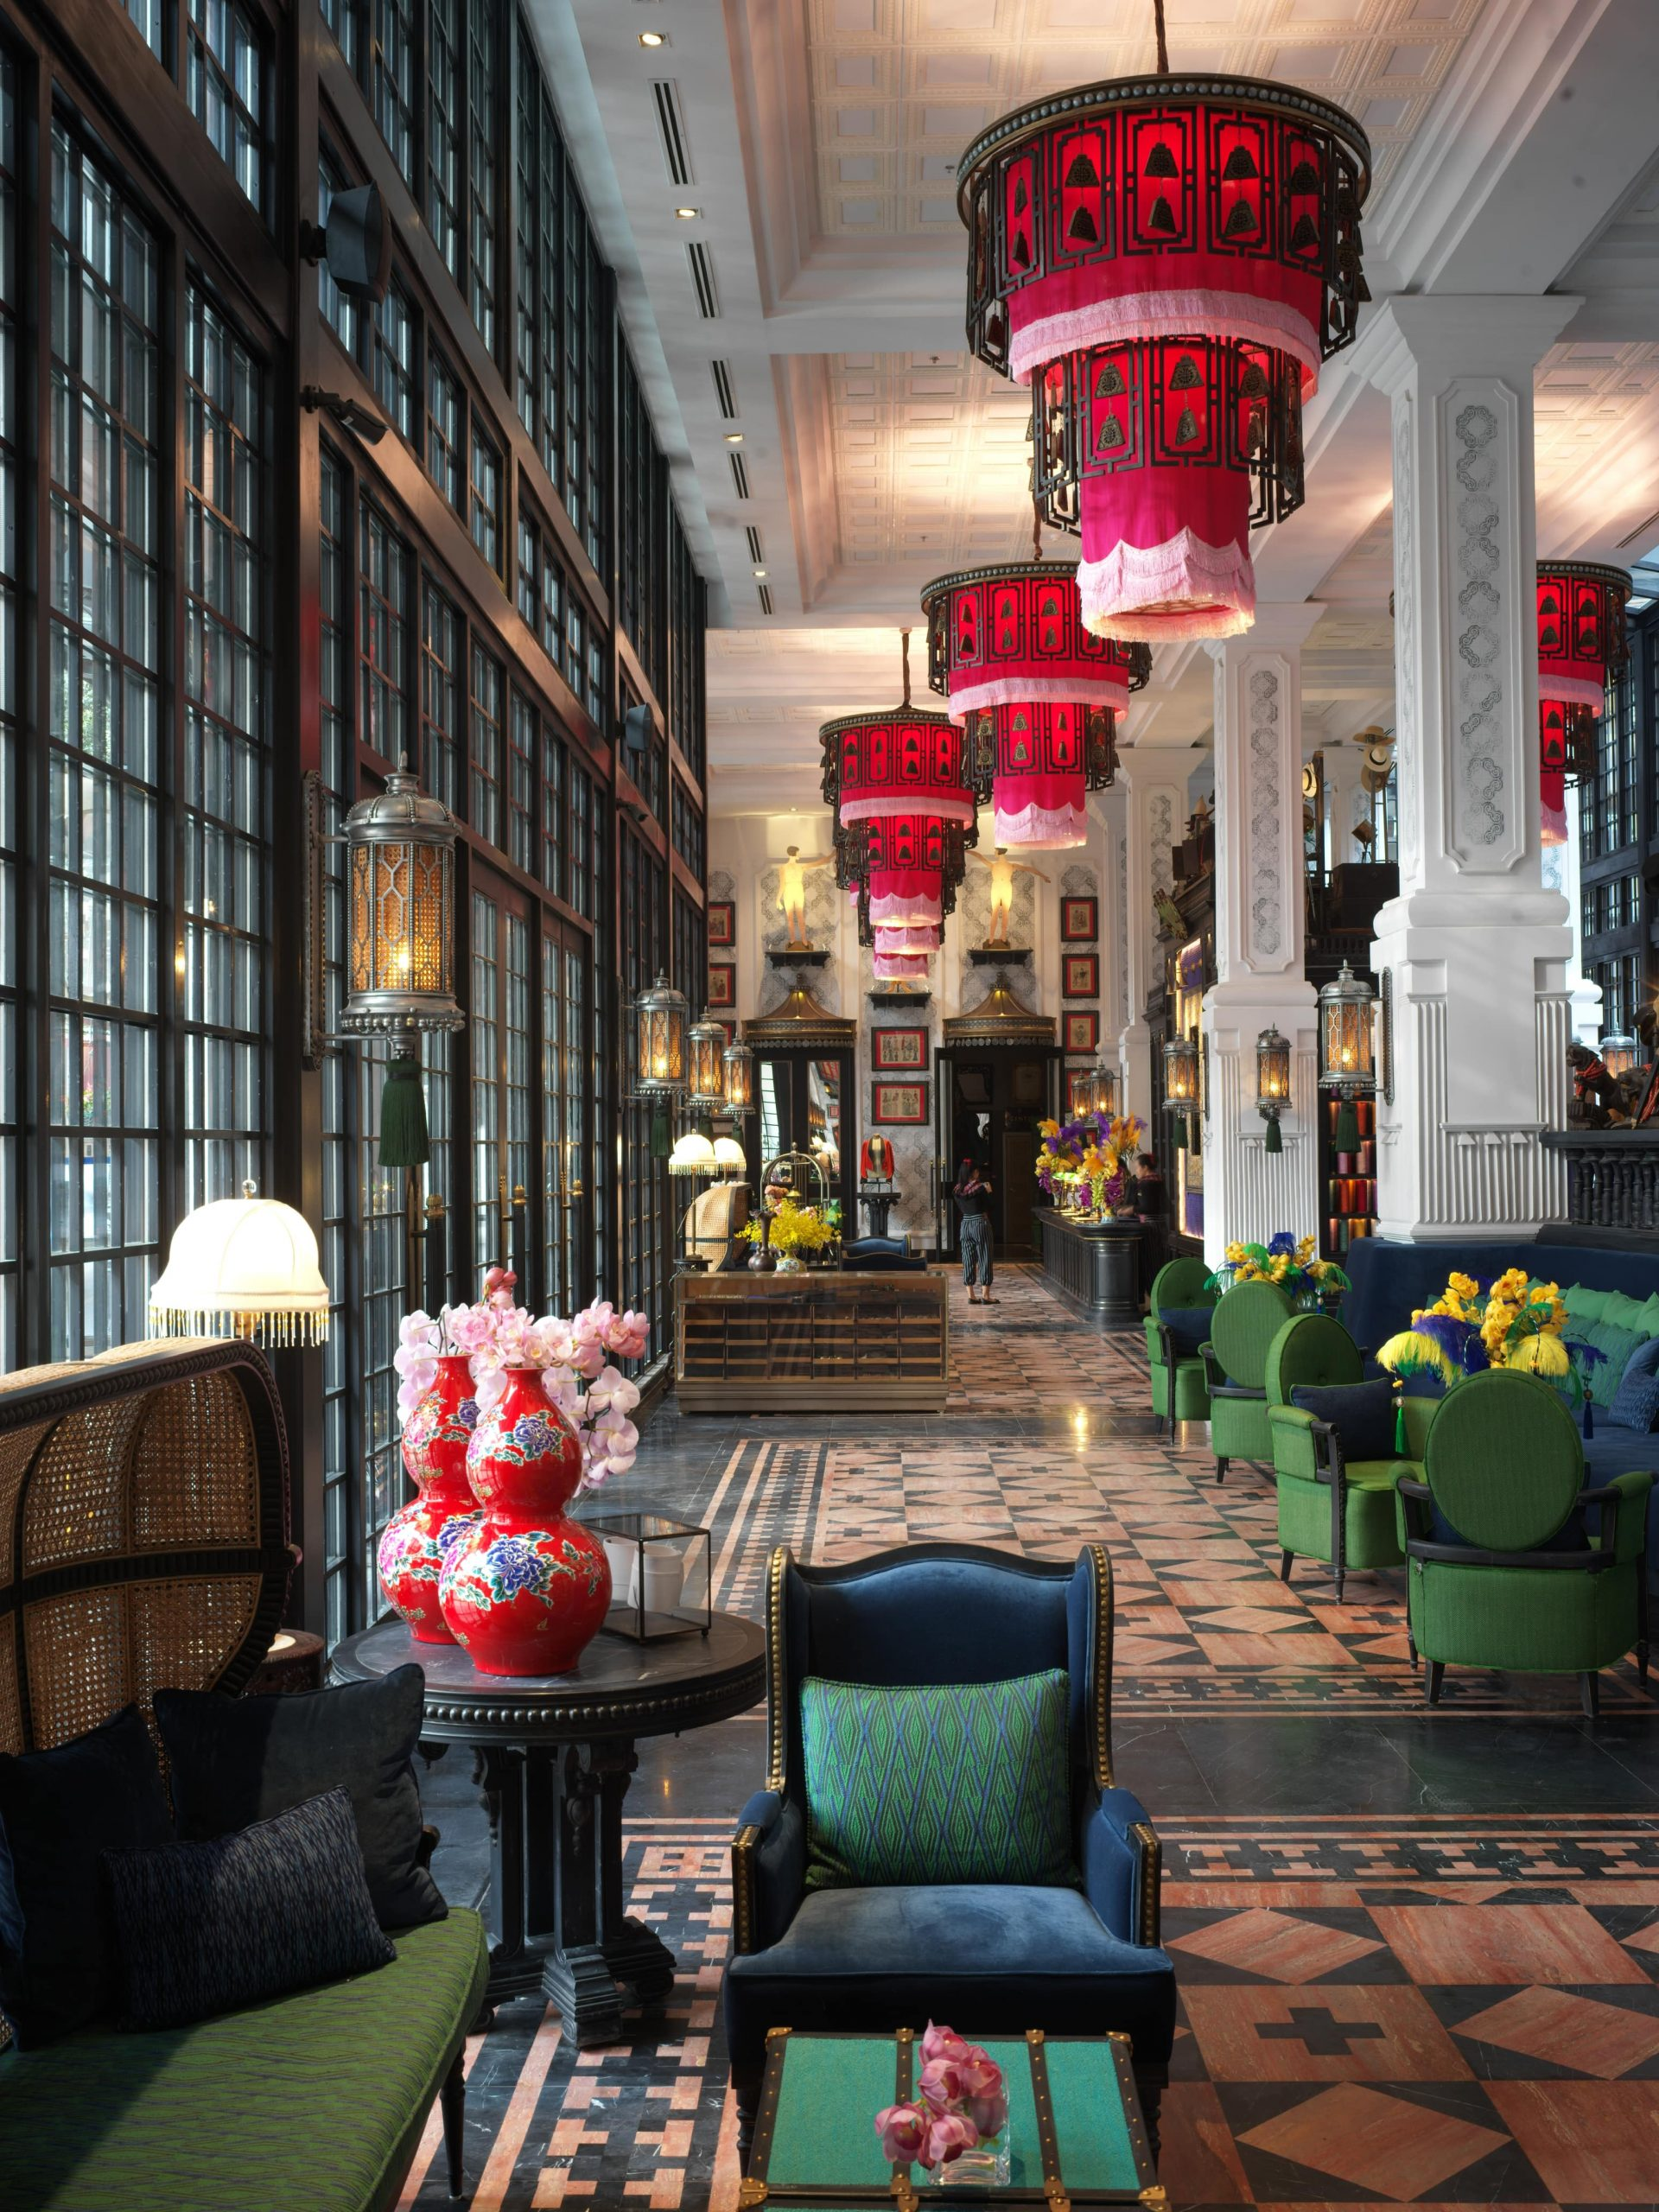 Best Interior Design | Hotel de La Coupole | MUSE Design Awards